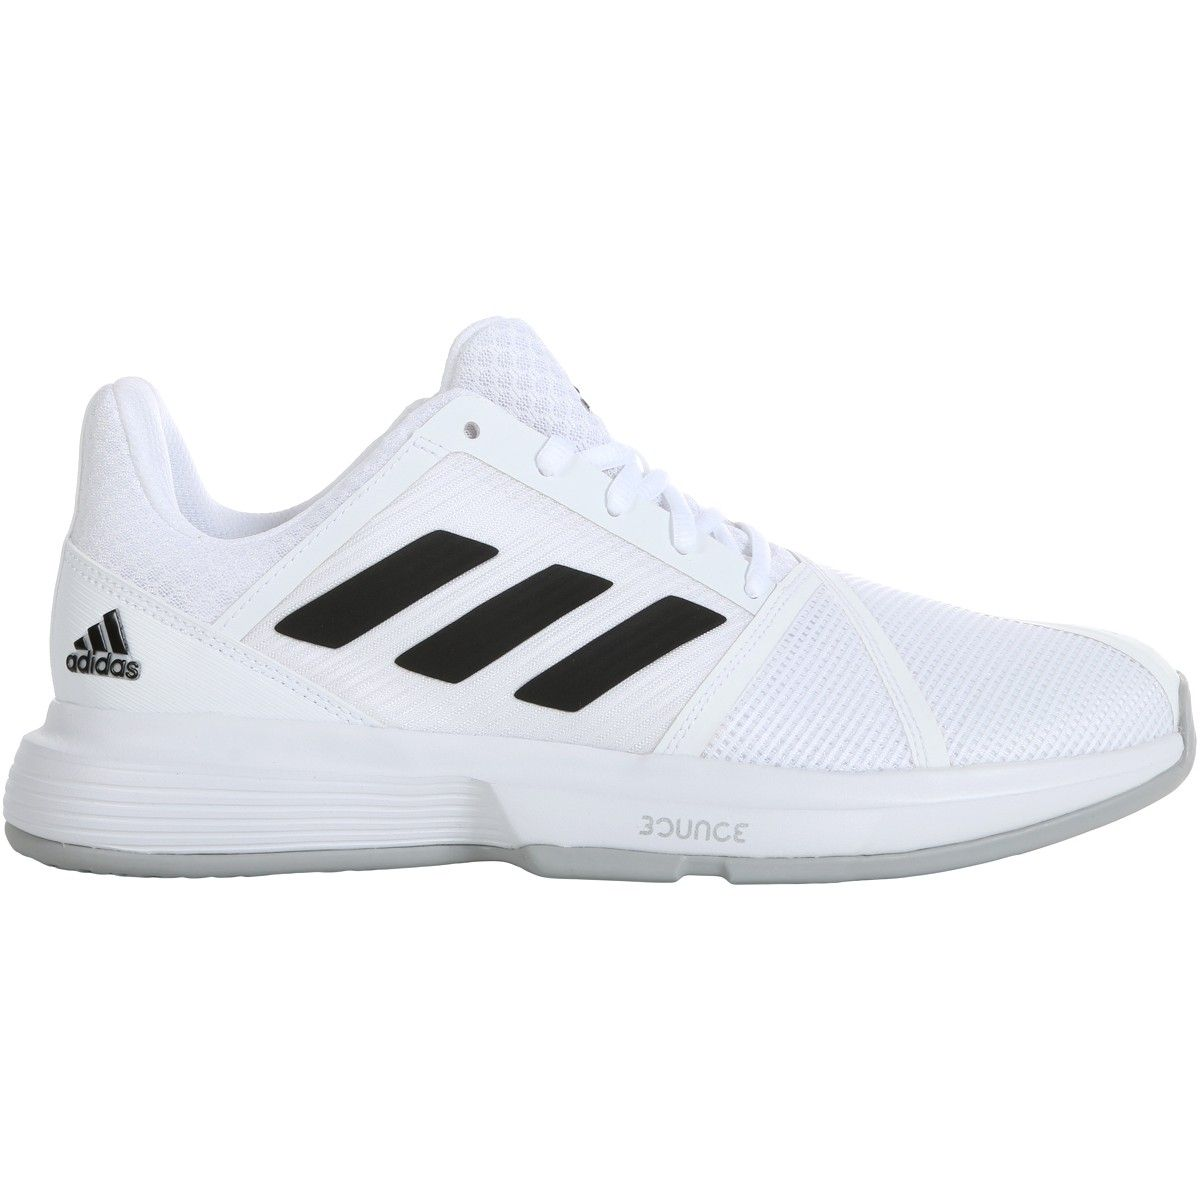 CHAUSSURES HOMME ADIDAS COURTJAM BOUNCE EF2480 BLANC